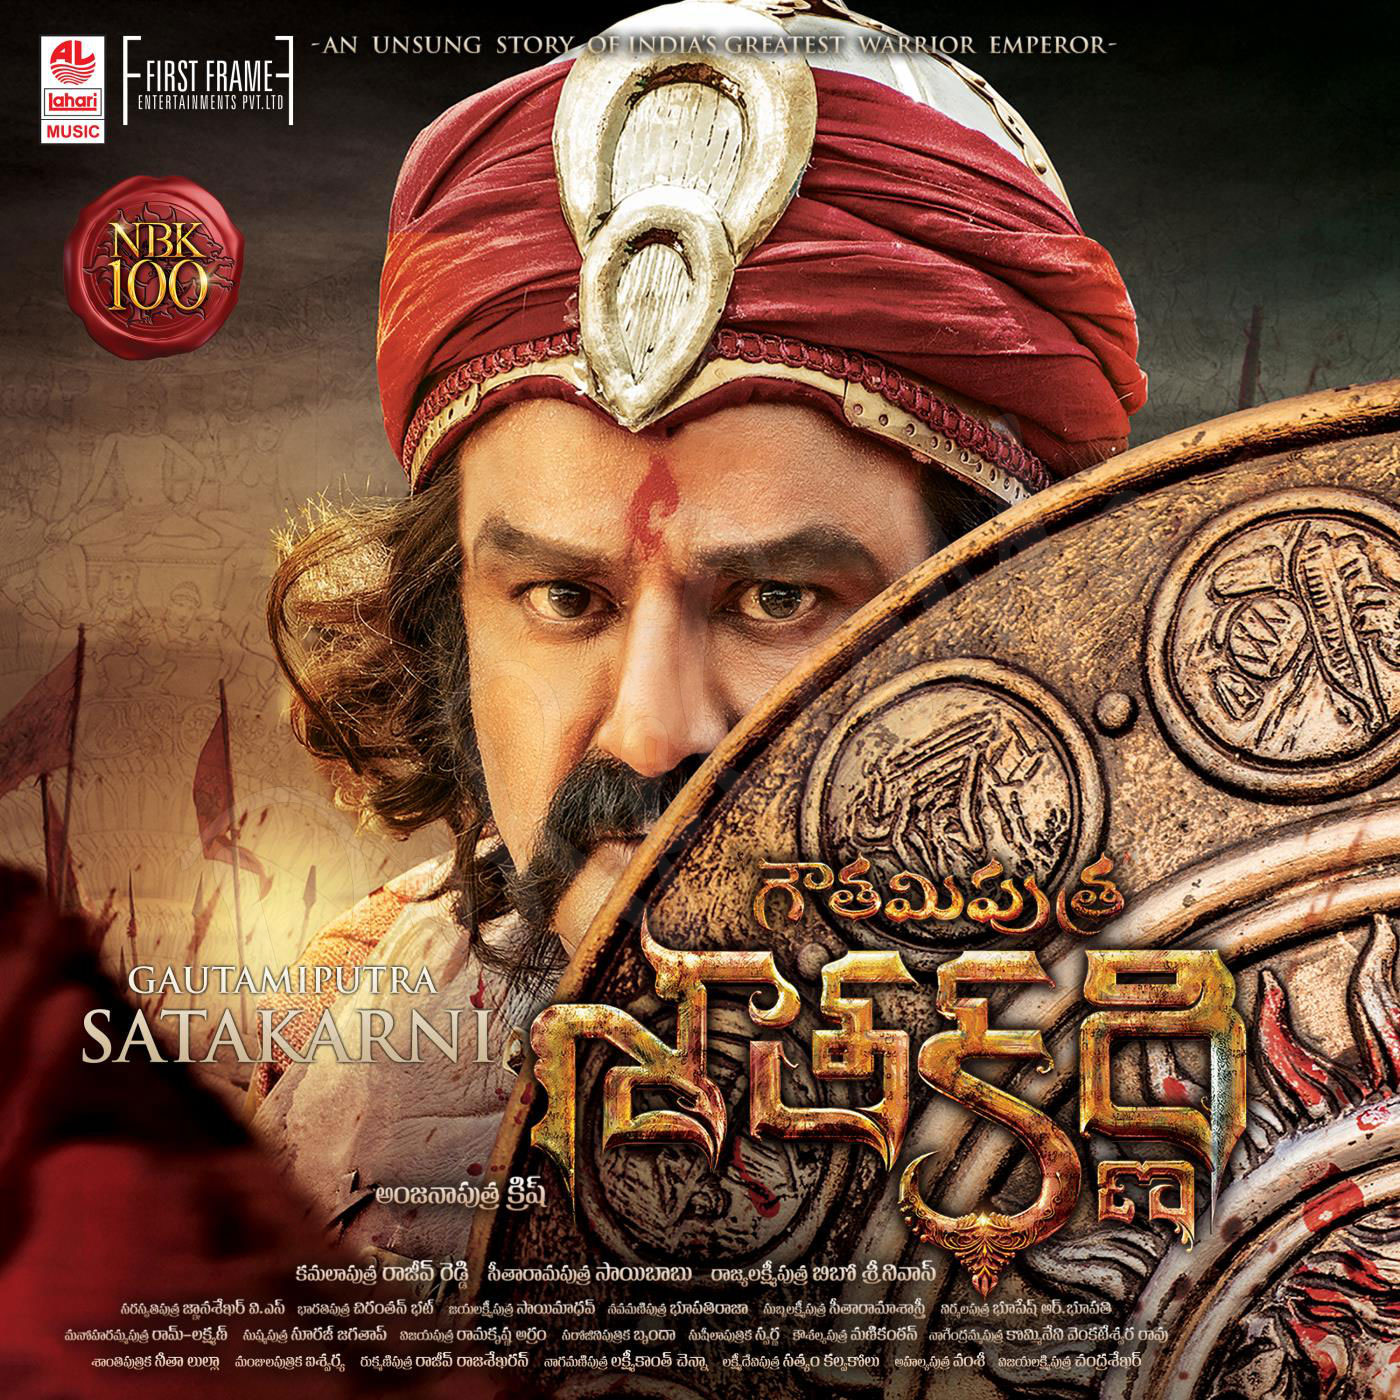 Gautamiputra-Satakarni-2016-Original-CD-Front-Cover-HD